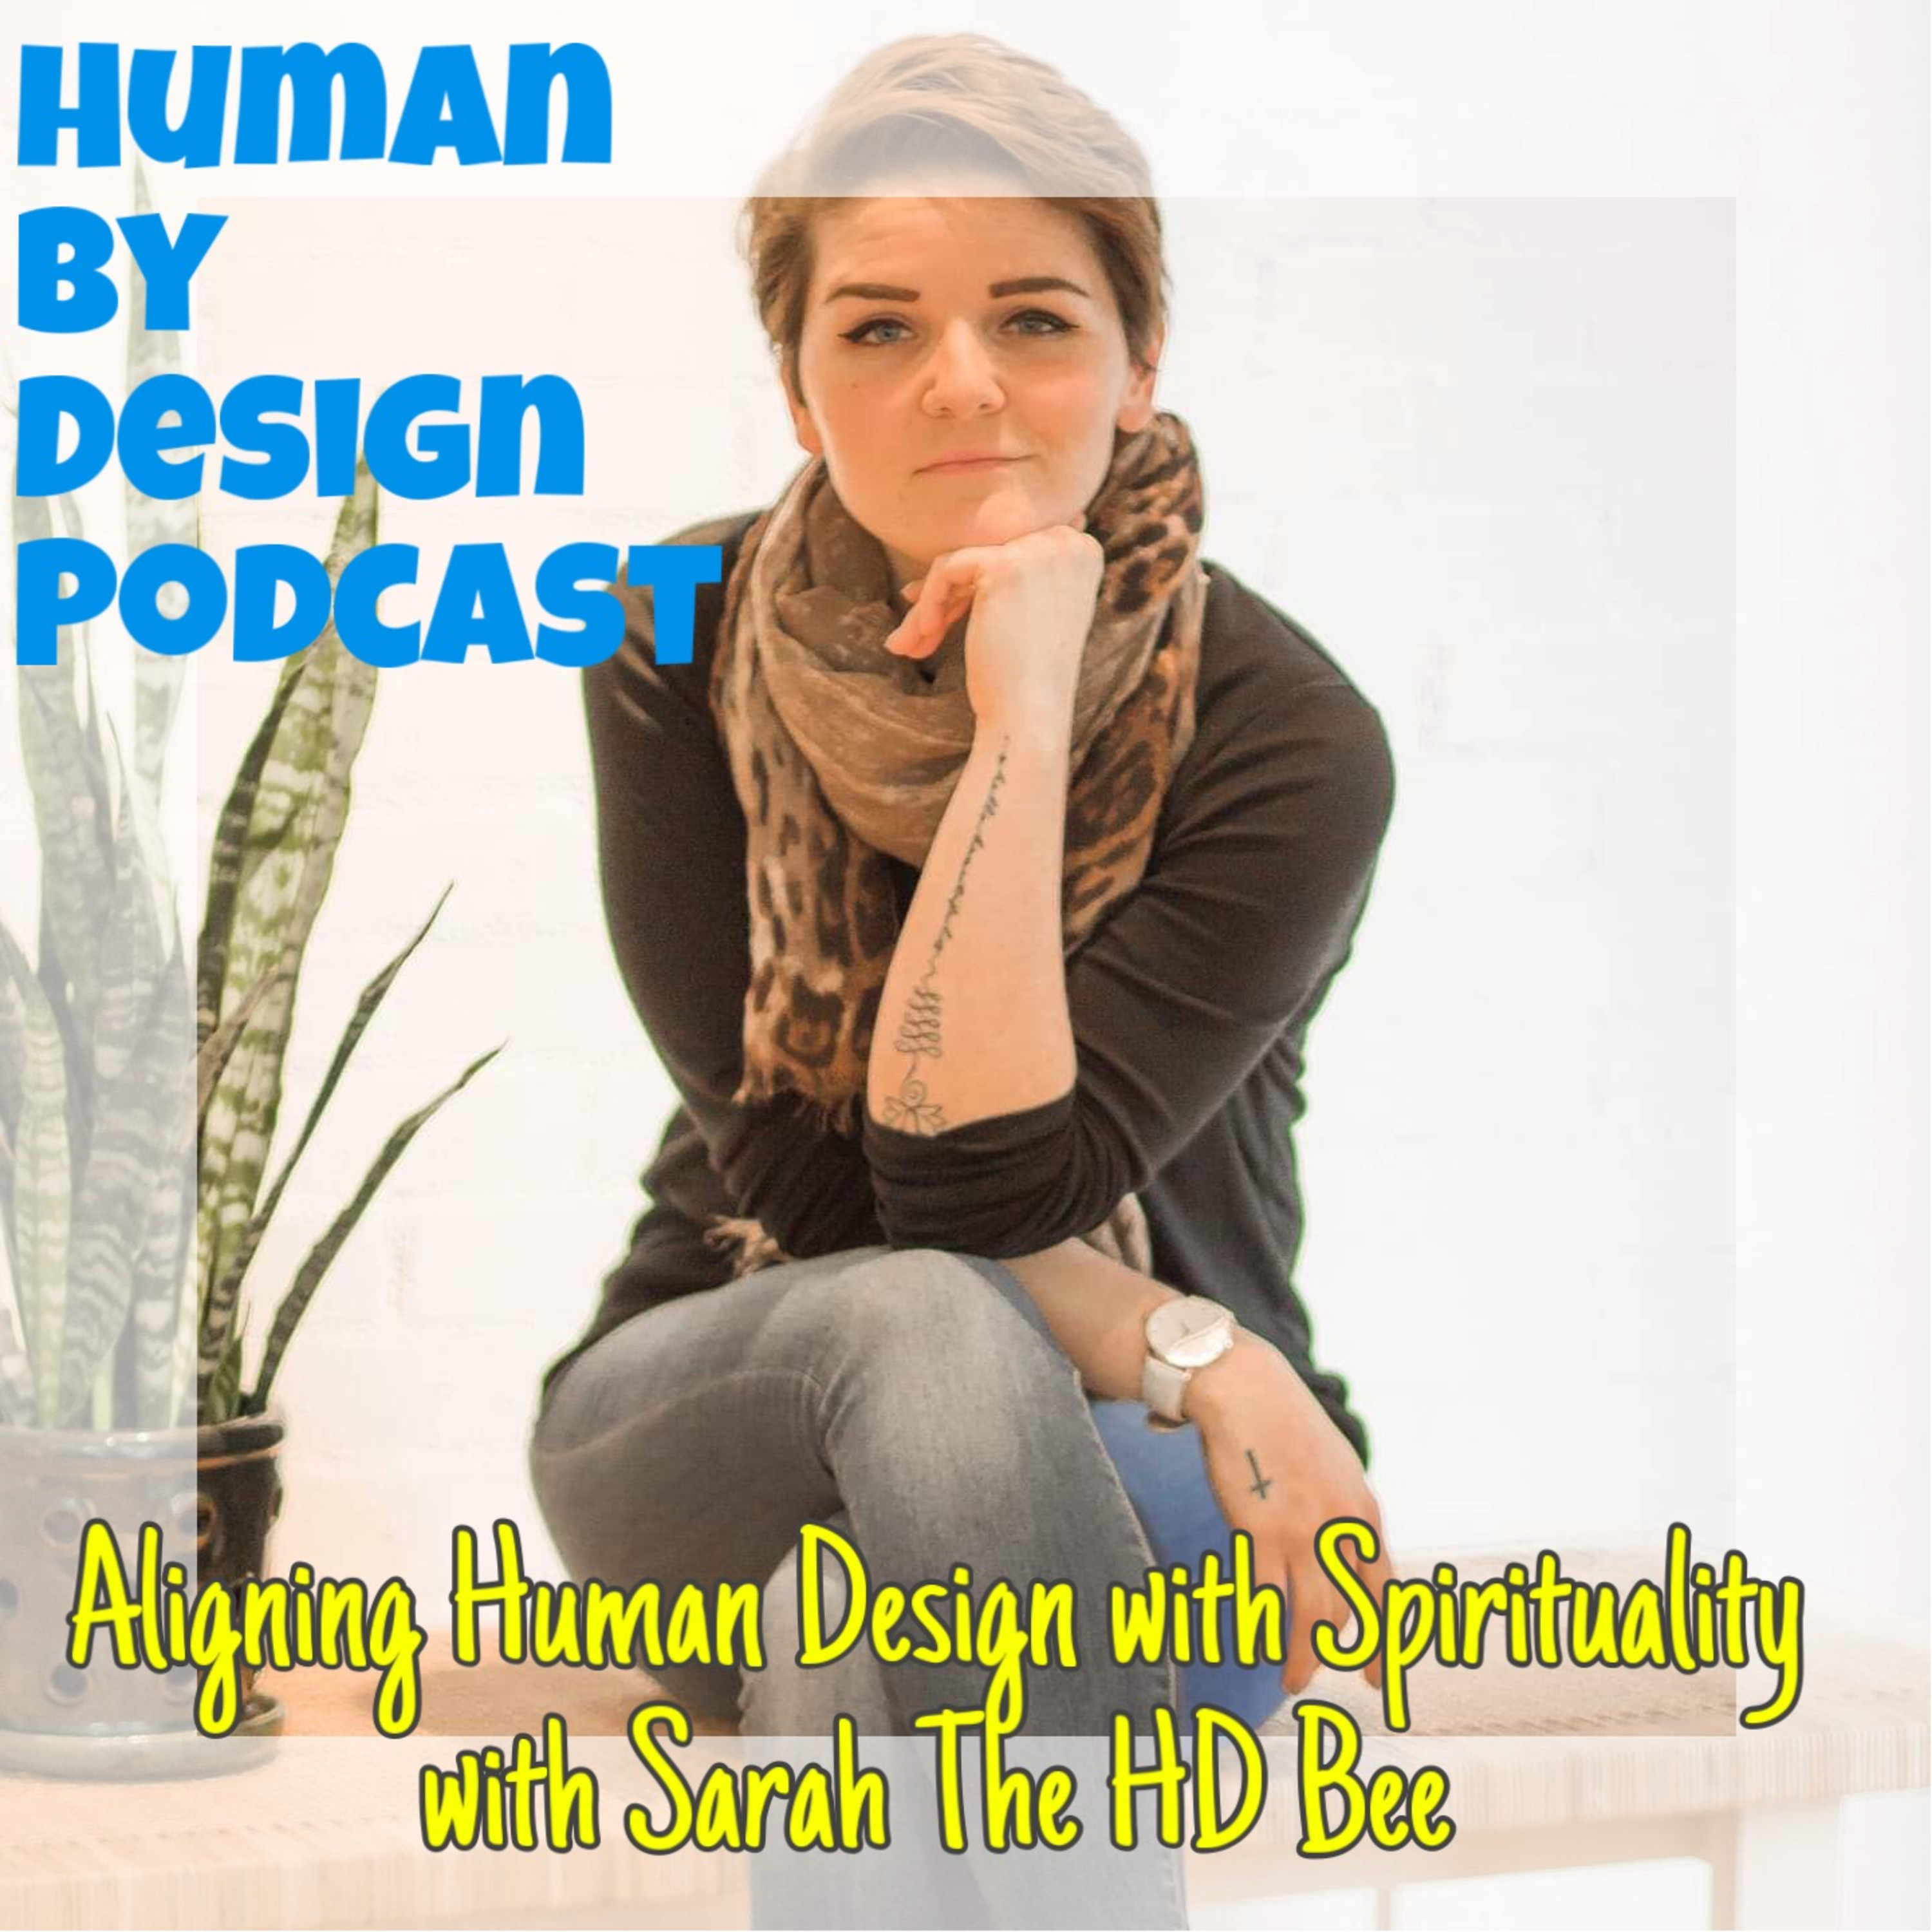 EP 11 Aligning Human Design with Spirituality with Sarah The HD Bee